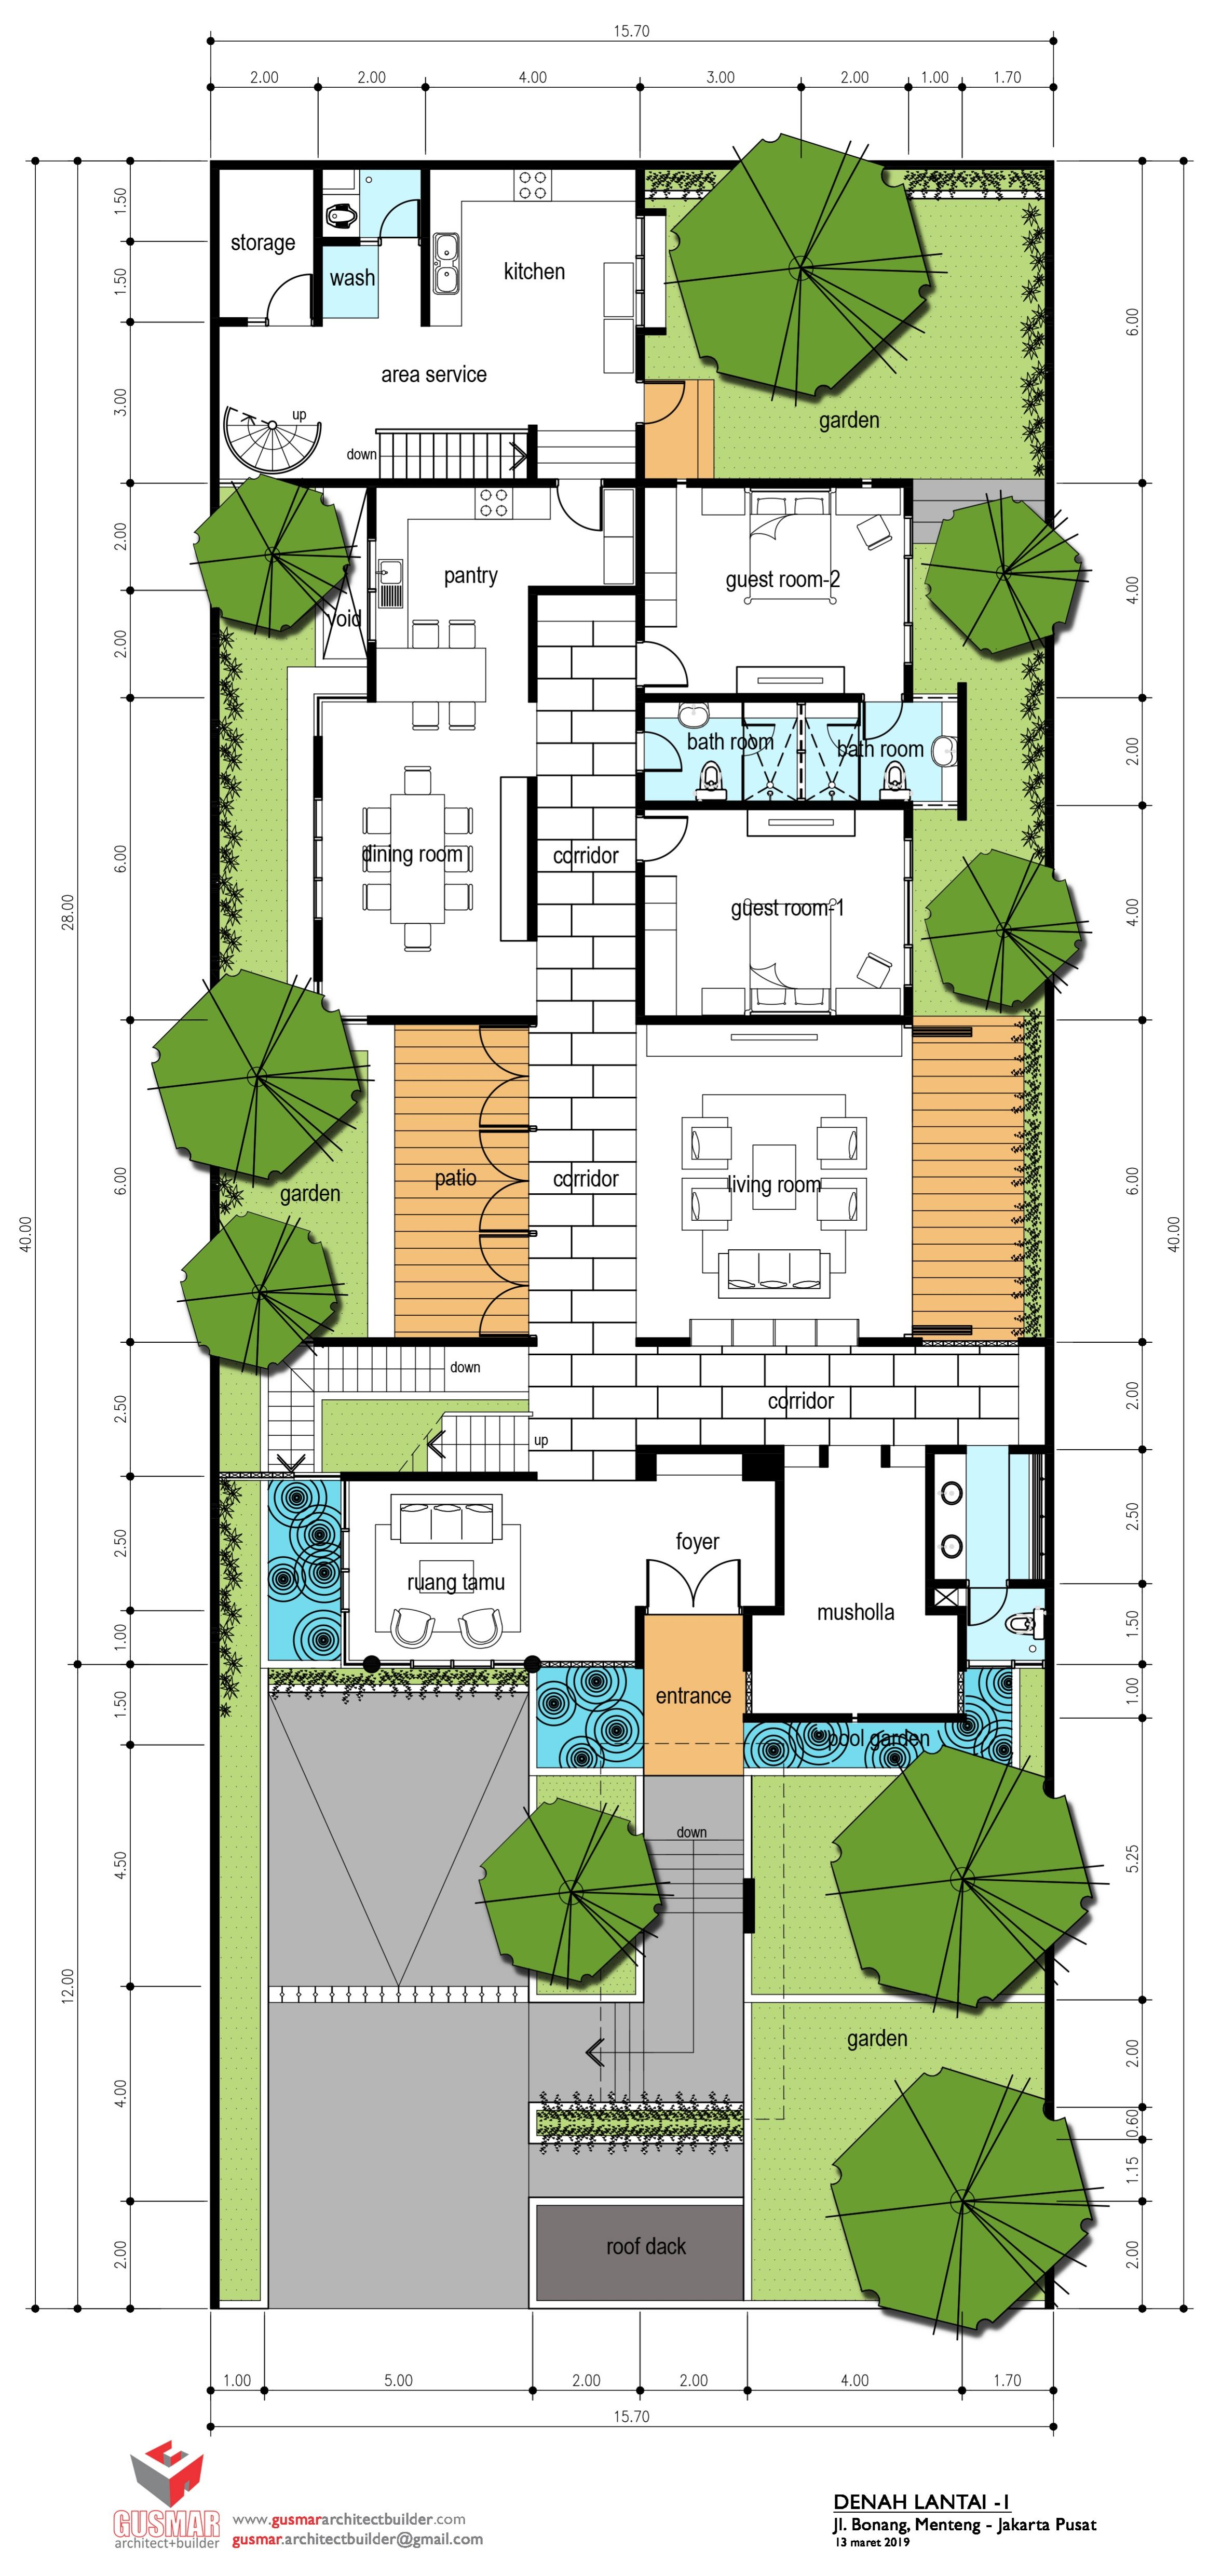 Proyek Rumah Tinggal Menteng Architecture Floor Plans Projects